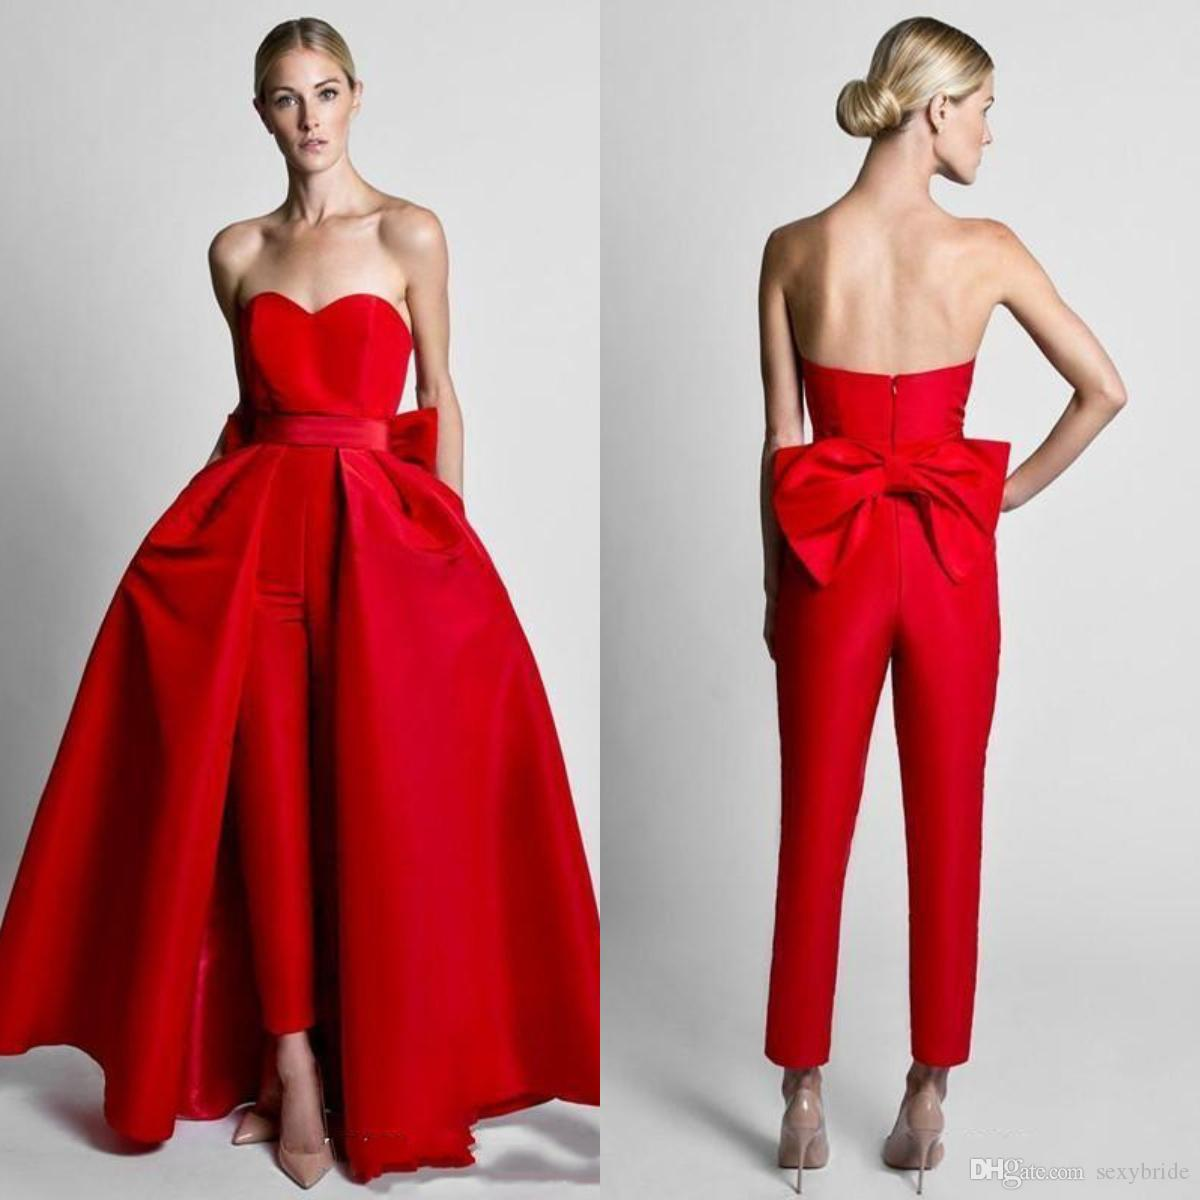 Krikor Jabotian 2019 Red Jumpsuits Prom Dresses With Detachable Overskirt Sweetheart Formal Evening Dresses Long Party Wear Pants for Women